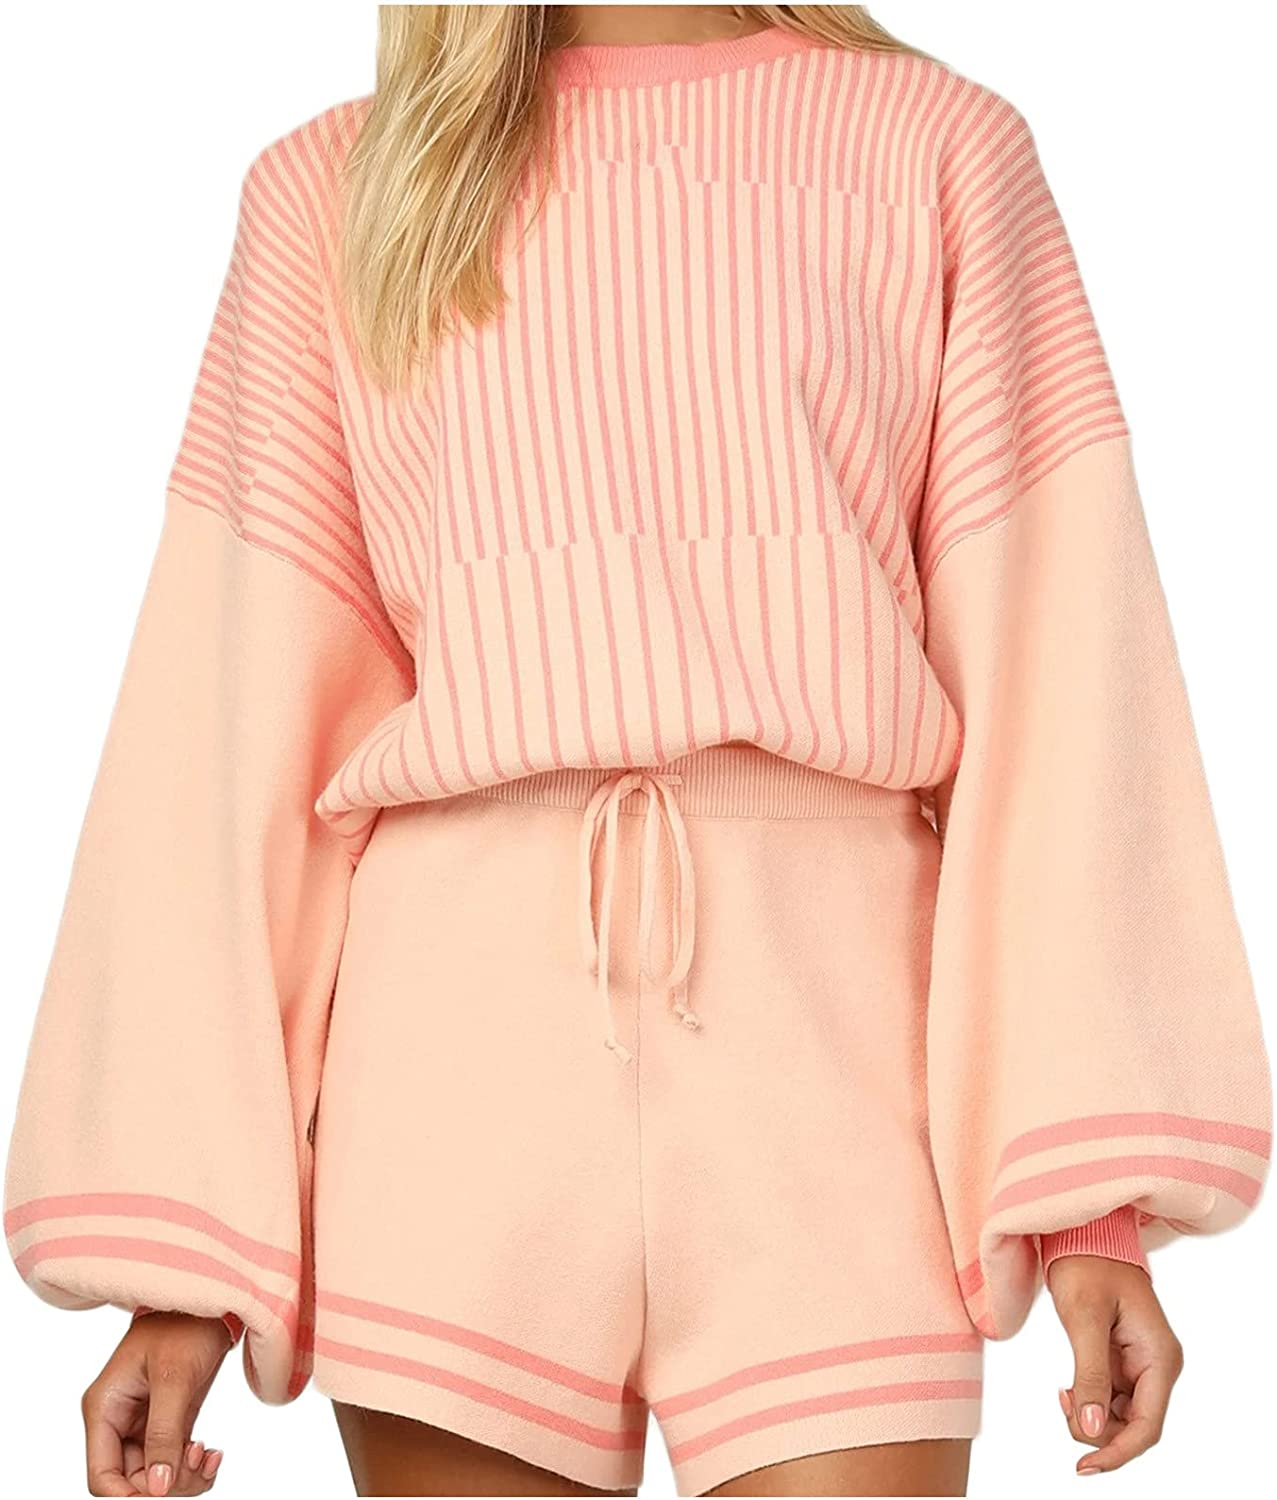 Womens Hoodies Pullover Sexy Solid Color Sweater Short Suit Long Sleeve Fall Maxi Casual Home Pajamas Set